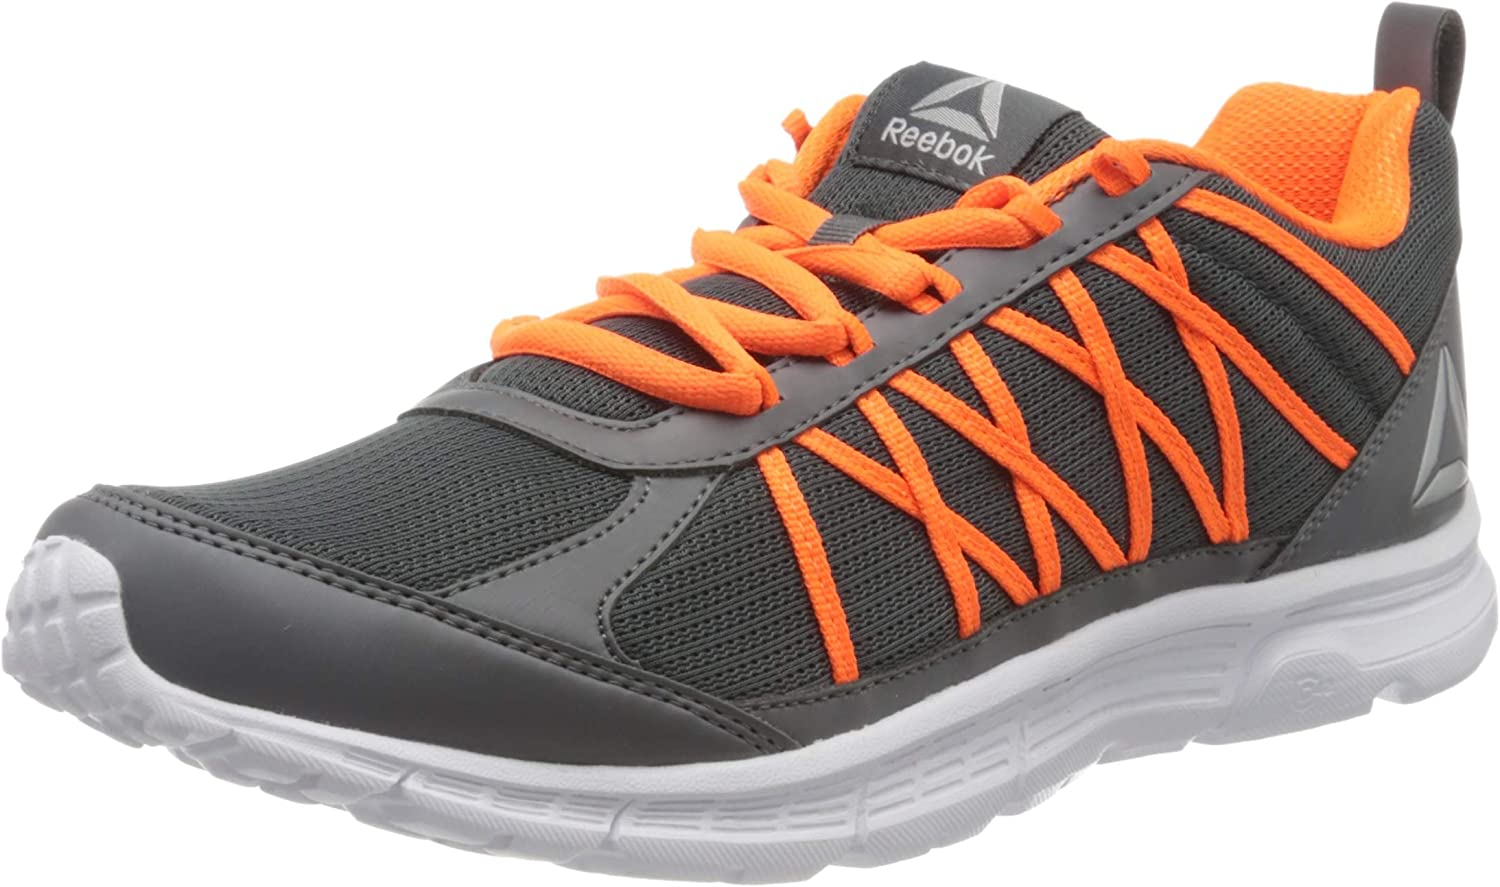 Reebok BD3992, Zapatillas de Trail Running para Hombre, Gris (Gris (Alloy/Wild Orange/White/Black/Pewter), 40 EU: Amazon.es: Zapatos y complementos